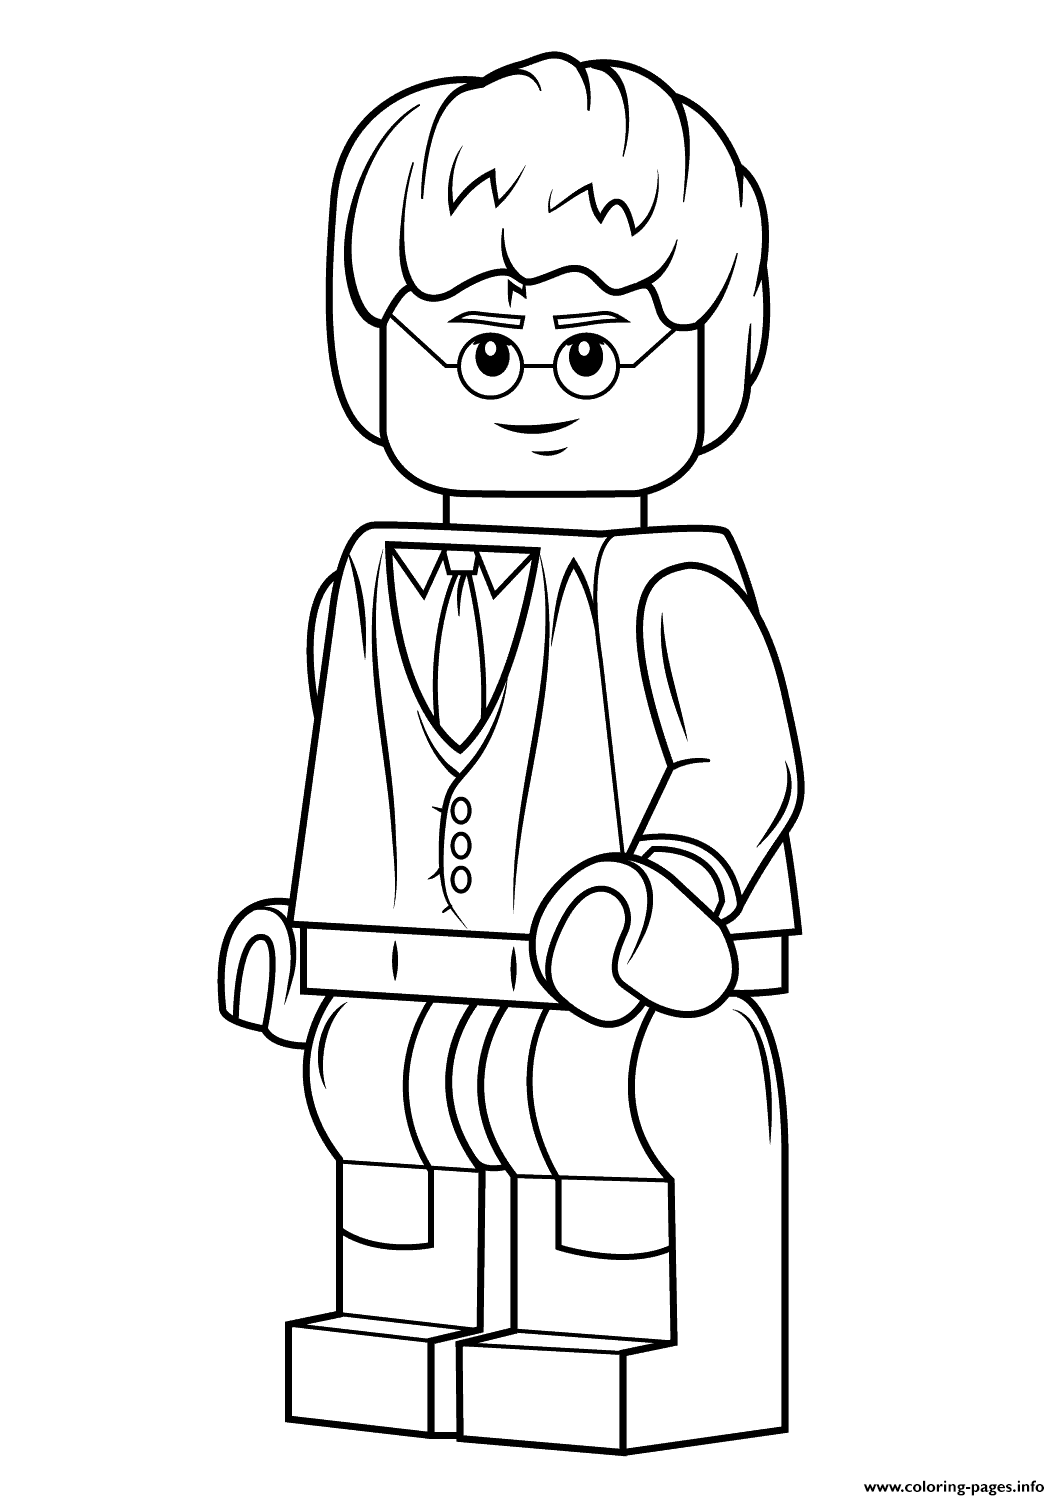 Print Lego Harry Potter Coloring Pages Harry Potter Coloring Pages Harry Potter Colors Lego Coloring Pages